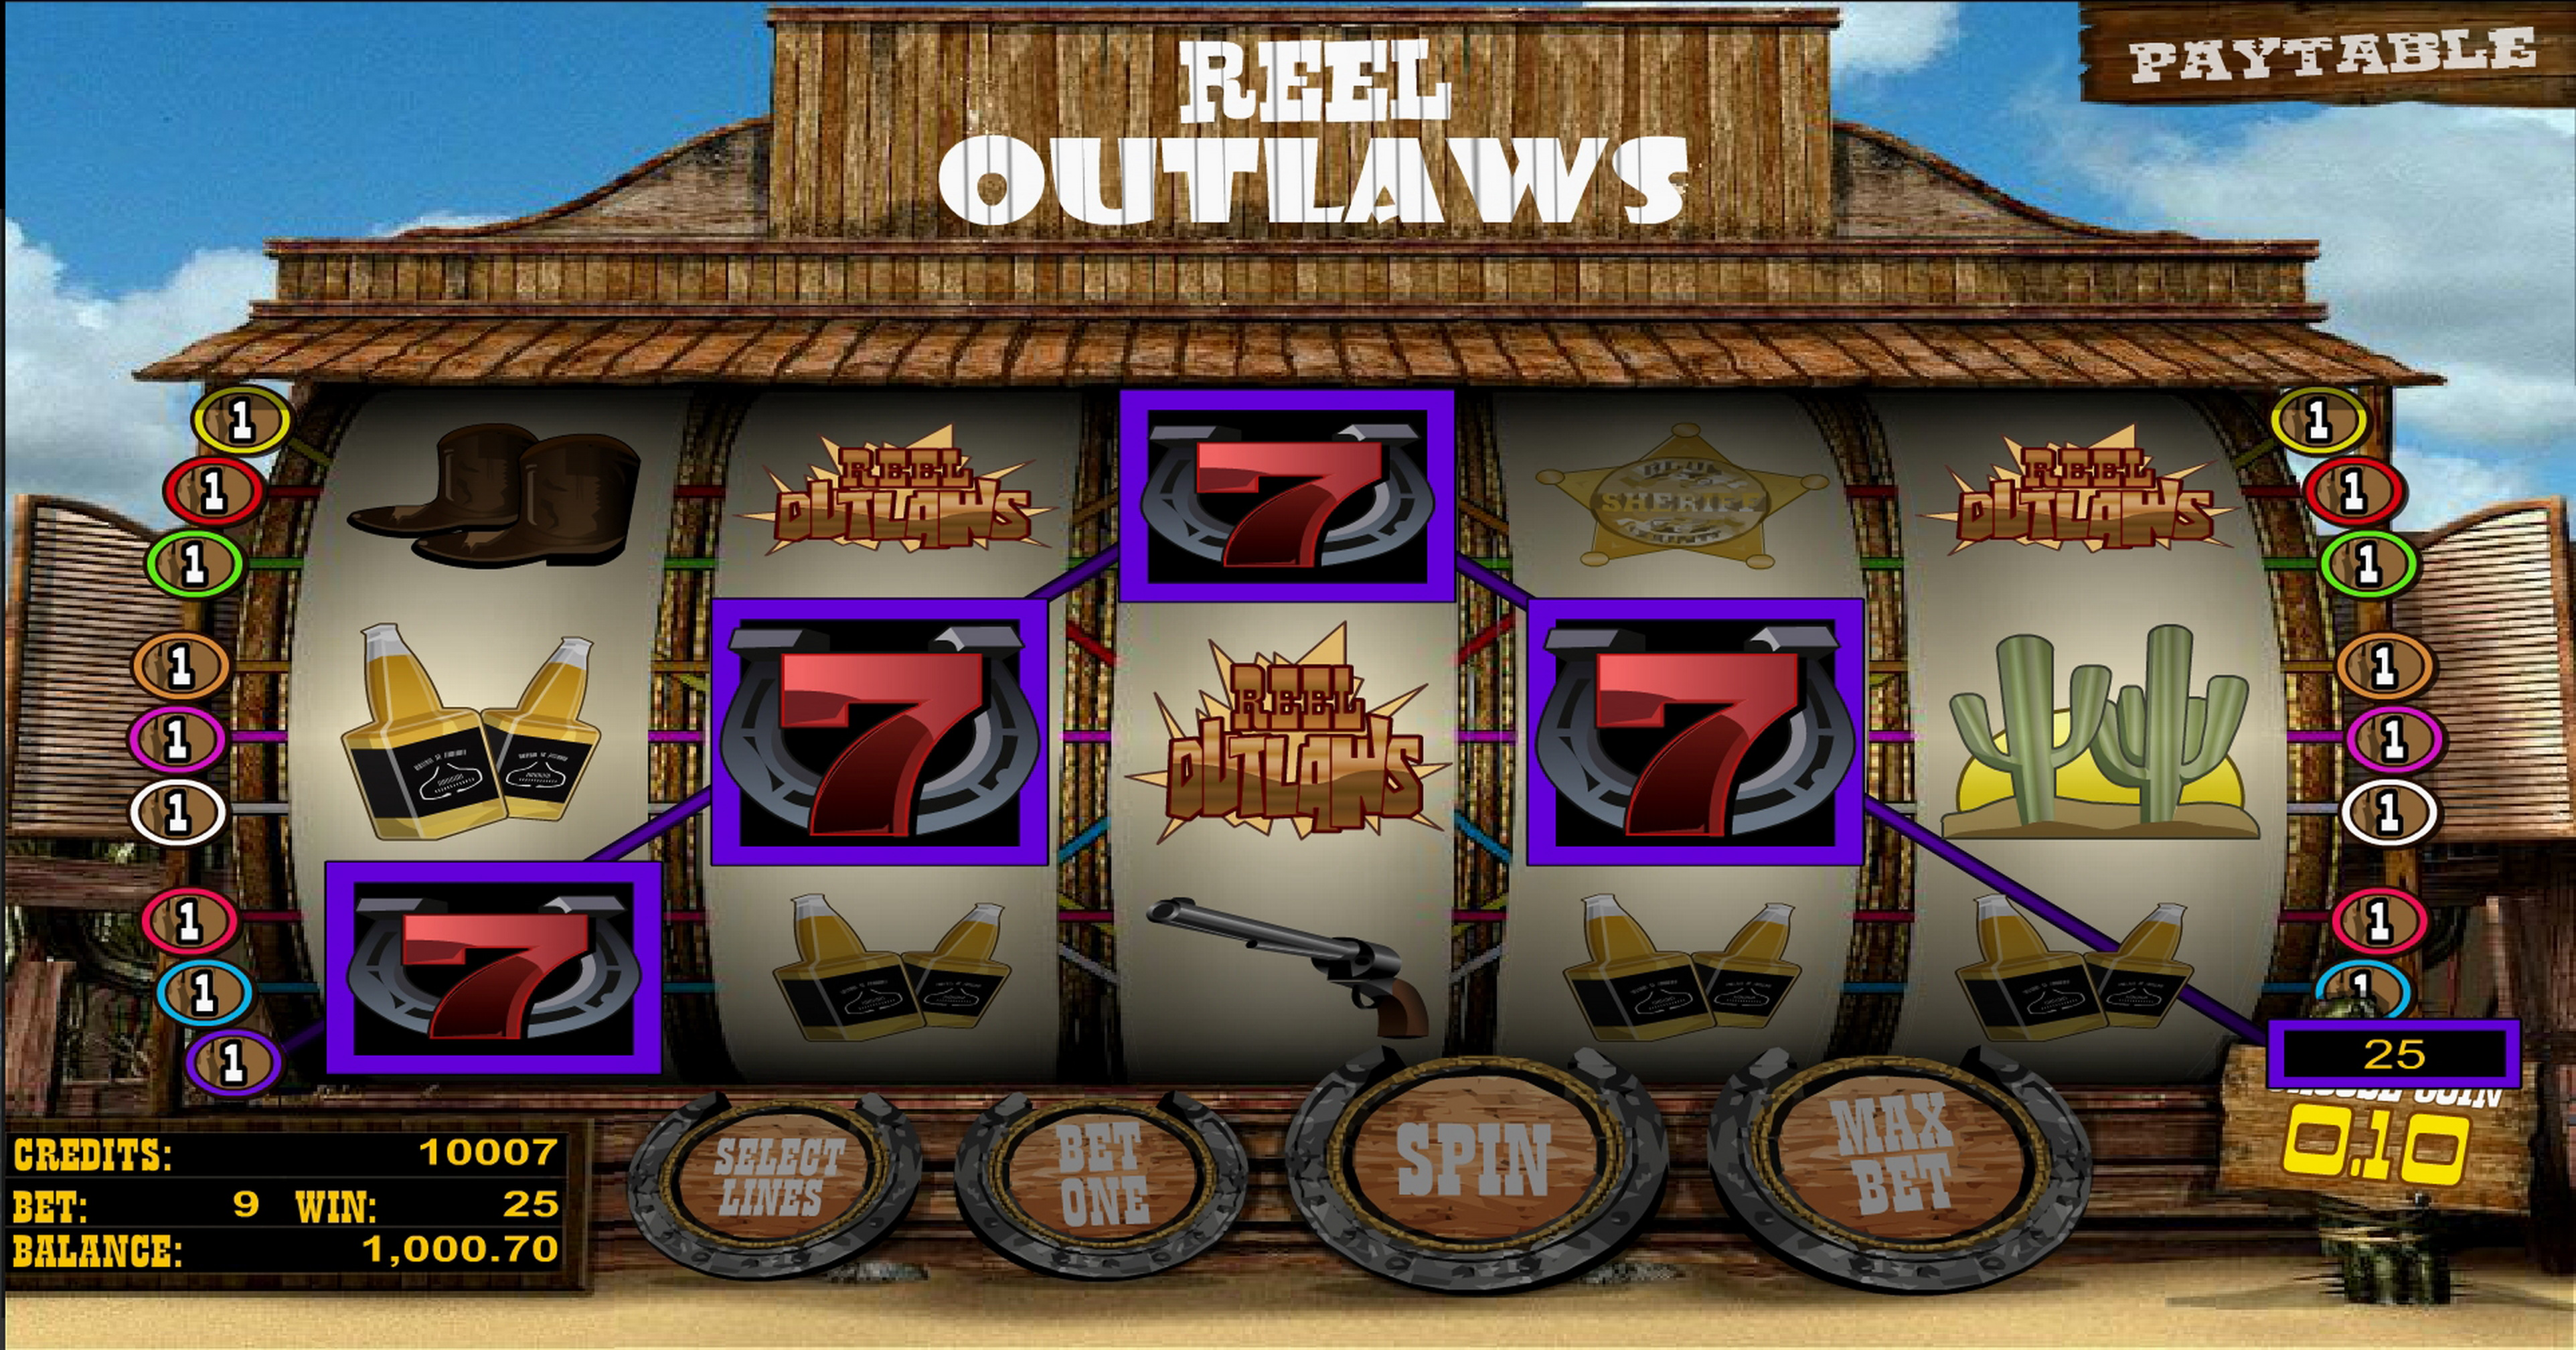 Win Money in Reel Outlaws Free Slot Game by Betsoft